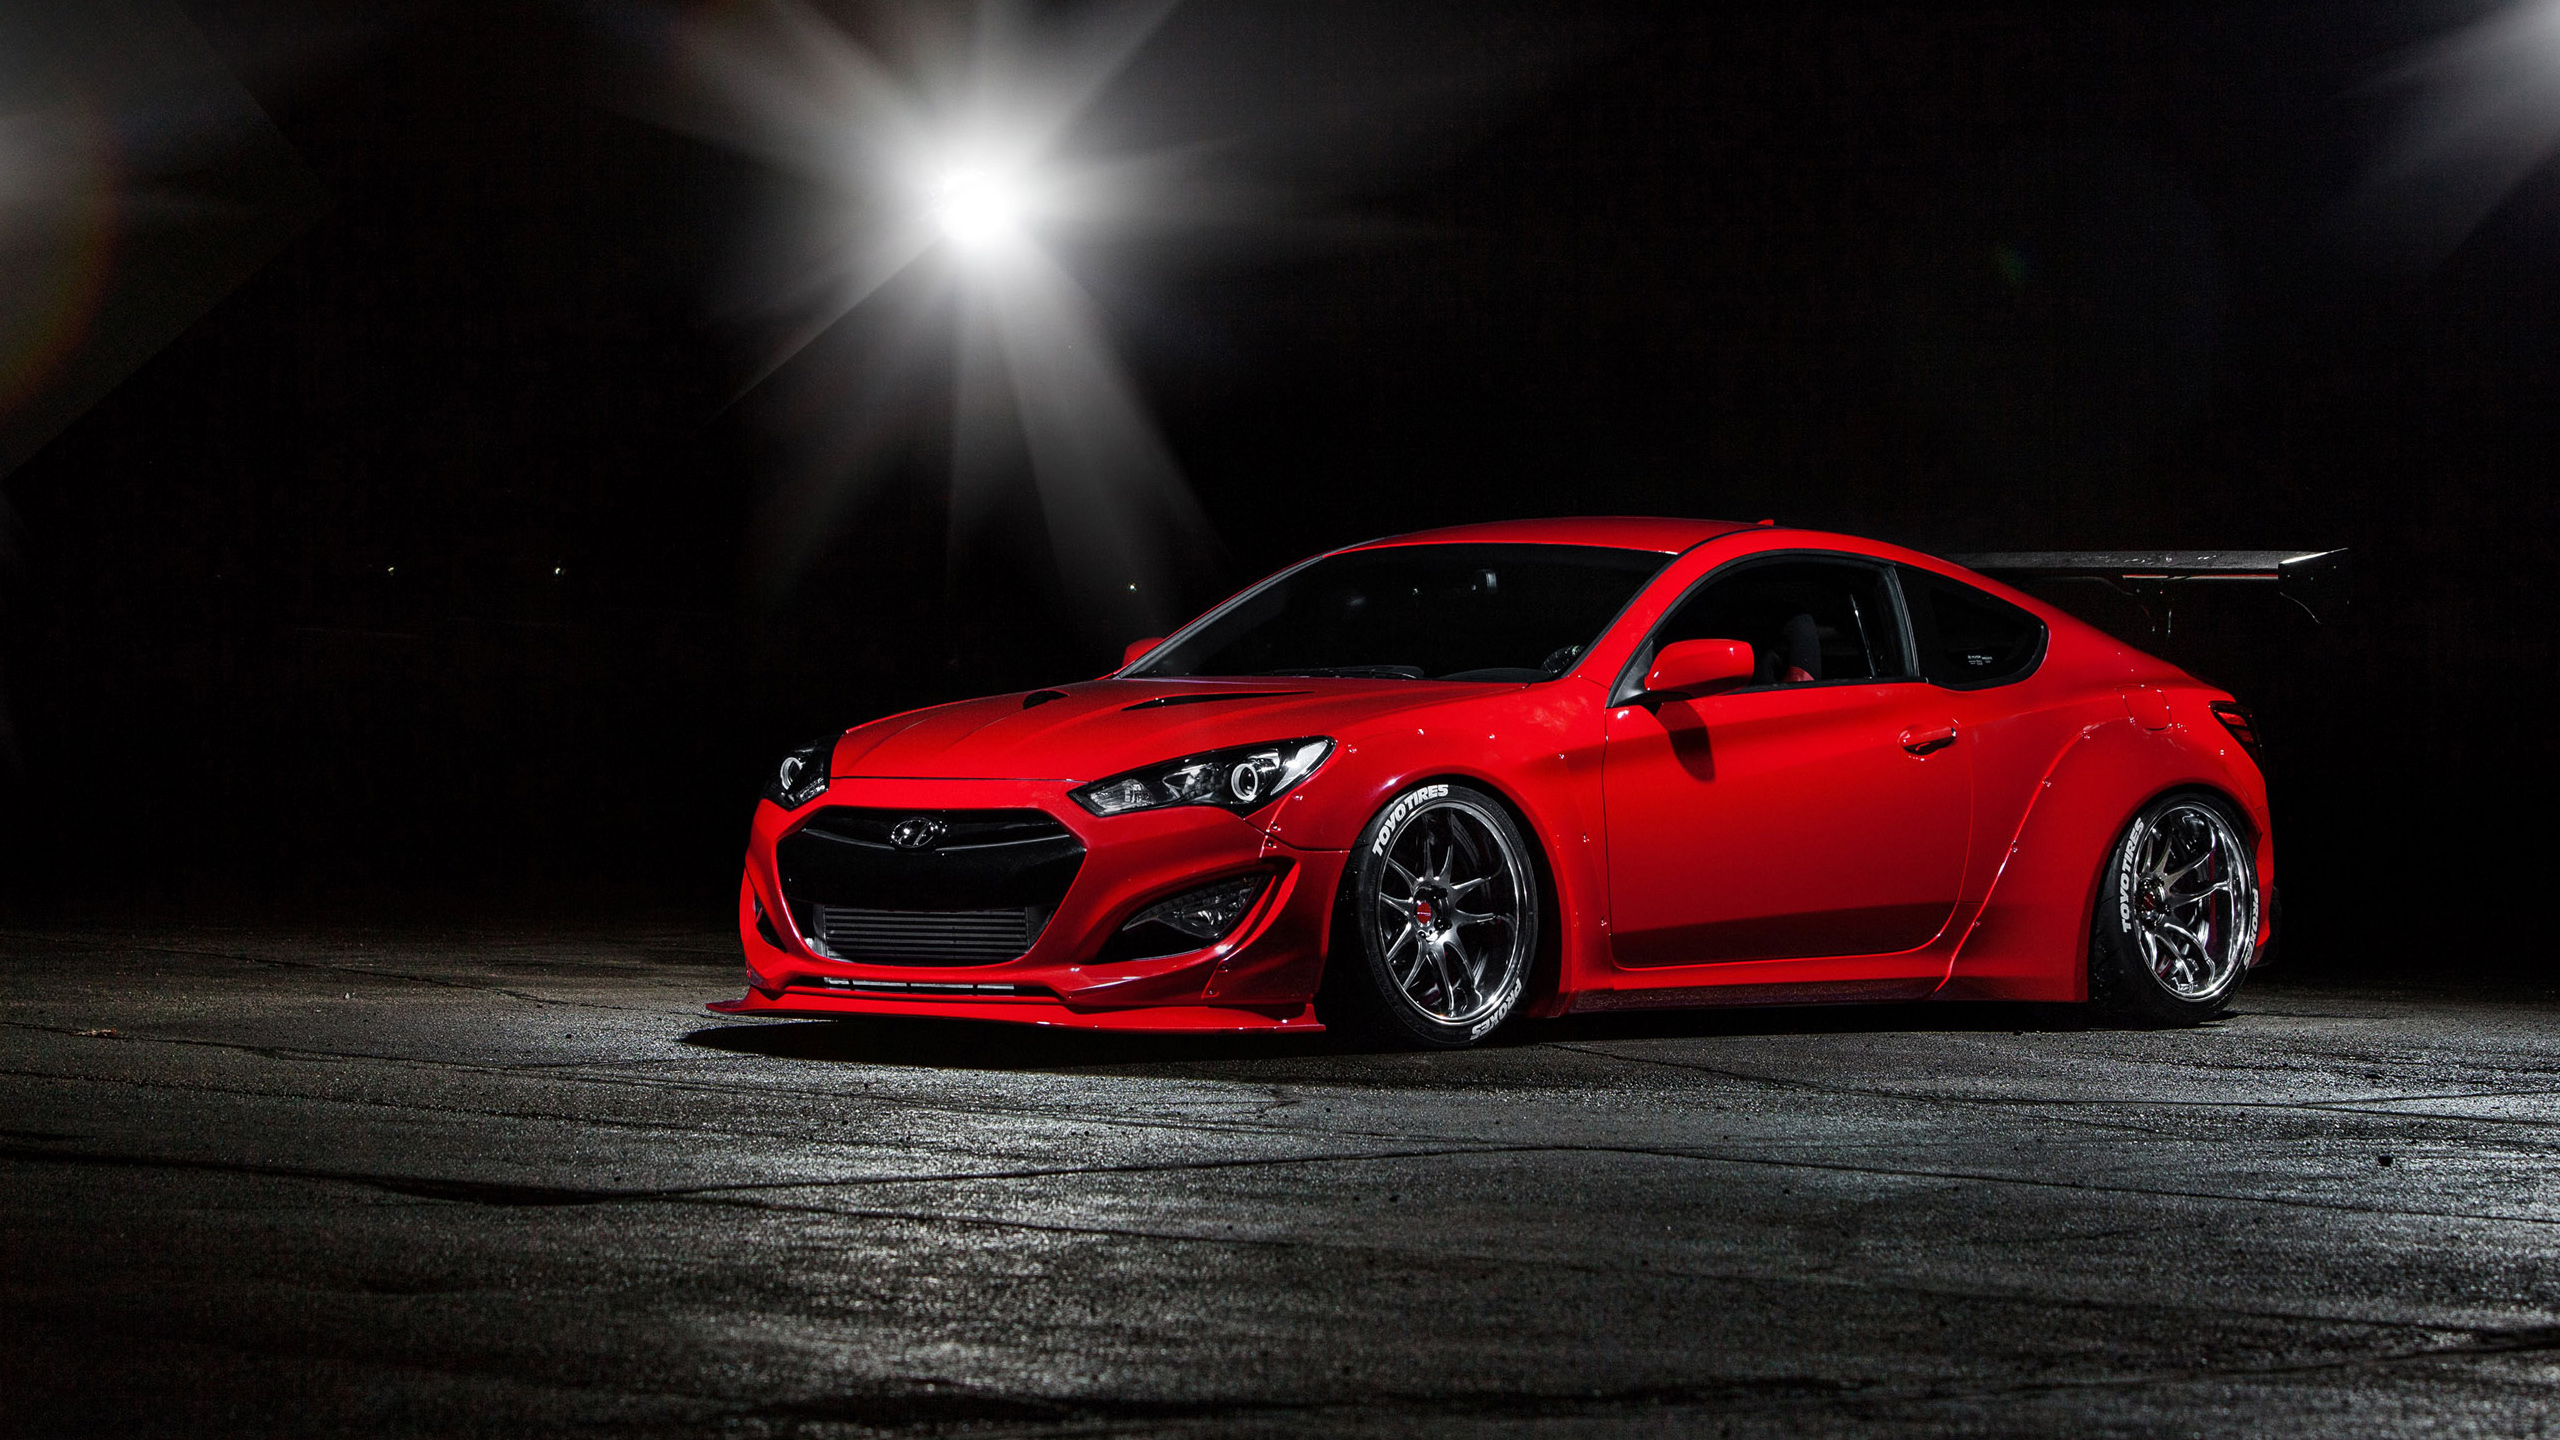 Hyundai 2014 Sema Concepts Wallpaper Hd Car Wallpapers